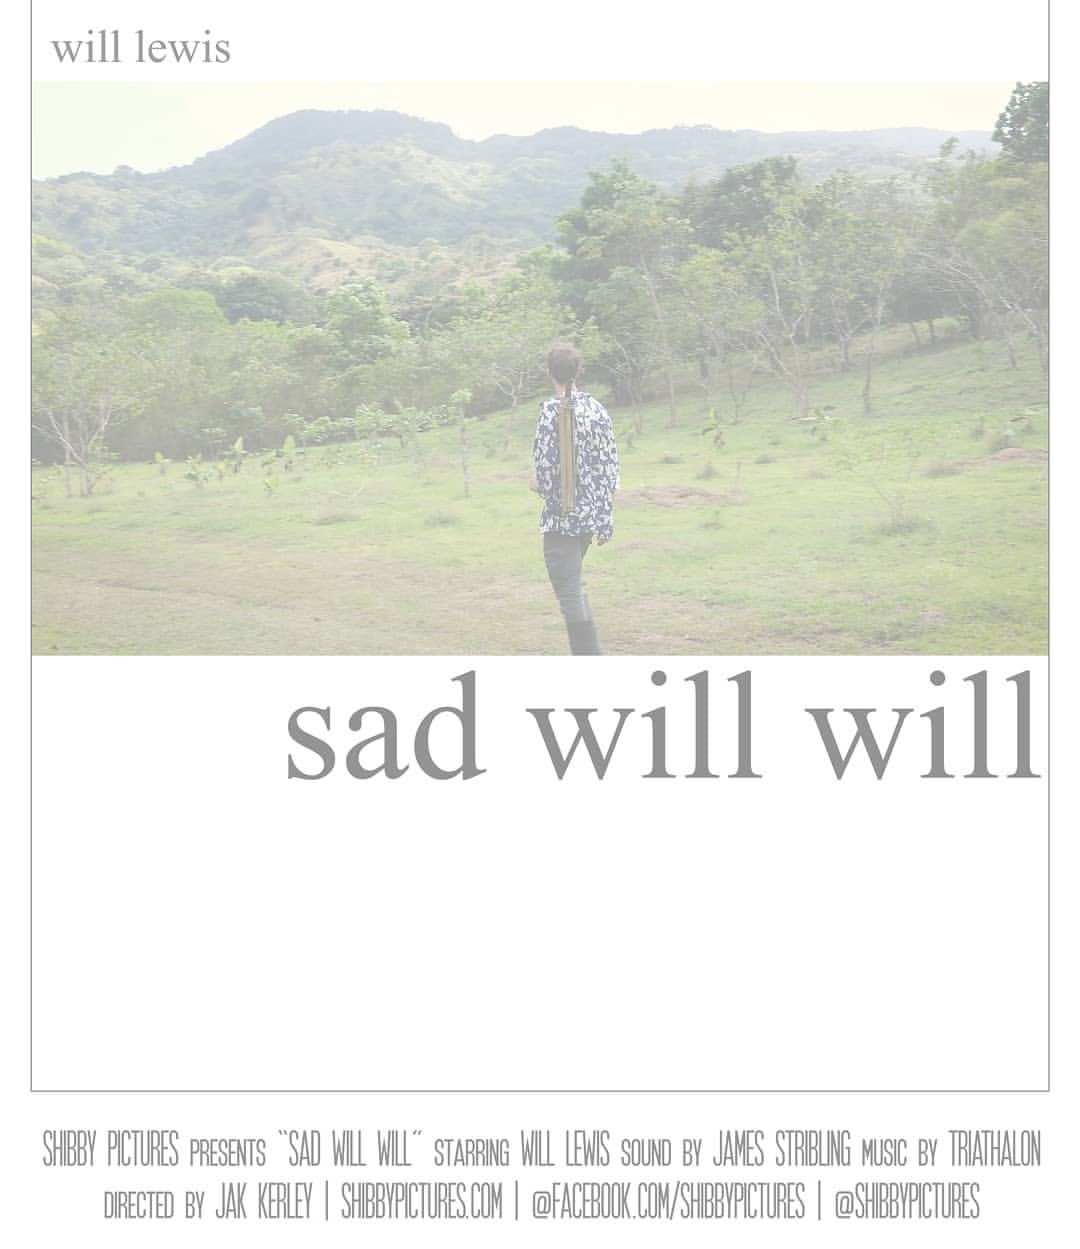 This week I'll be releasing a follow up piece to Sad Will, one of my favorite shorts I've ever made. We filmed it in Panama earlier this year. This one is called Sad Will Will. Check the oirinal Sad Will here:  https://www.youtube.com/watch?v=HXyr3IaII6U